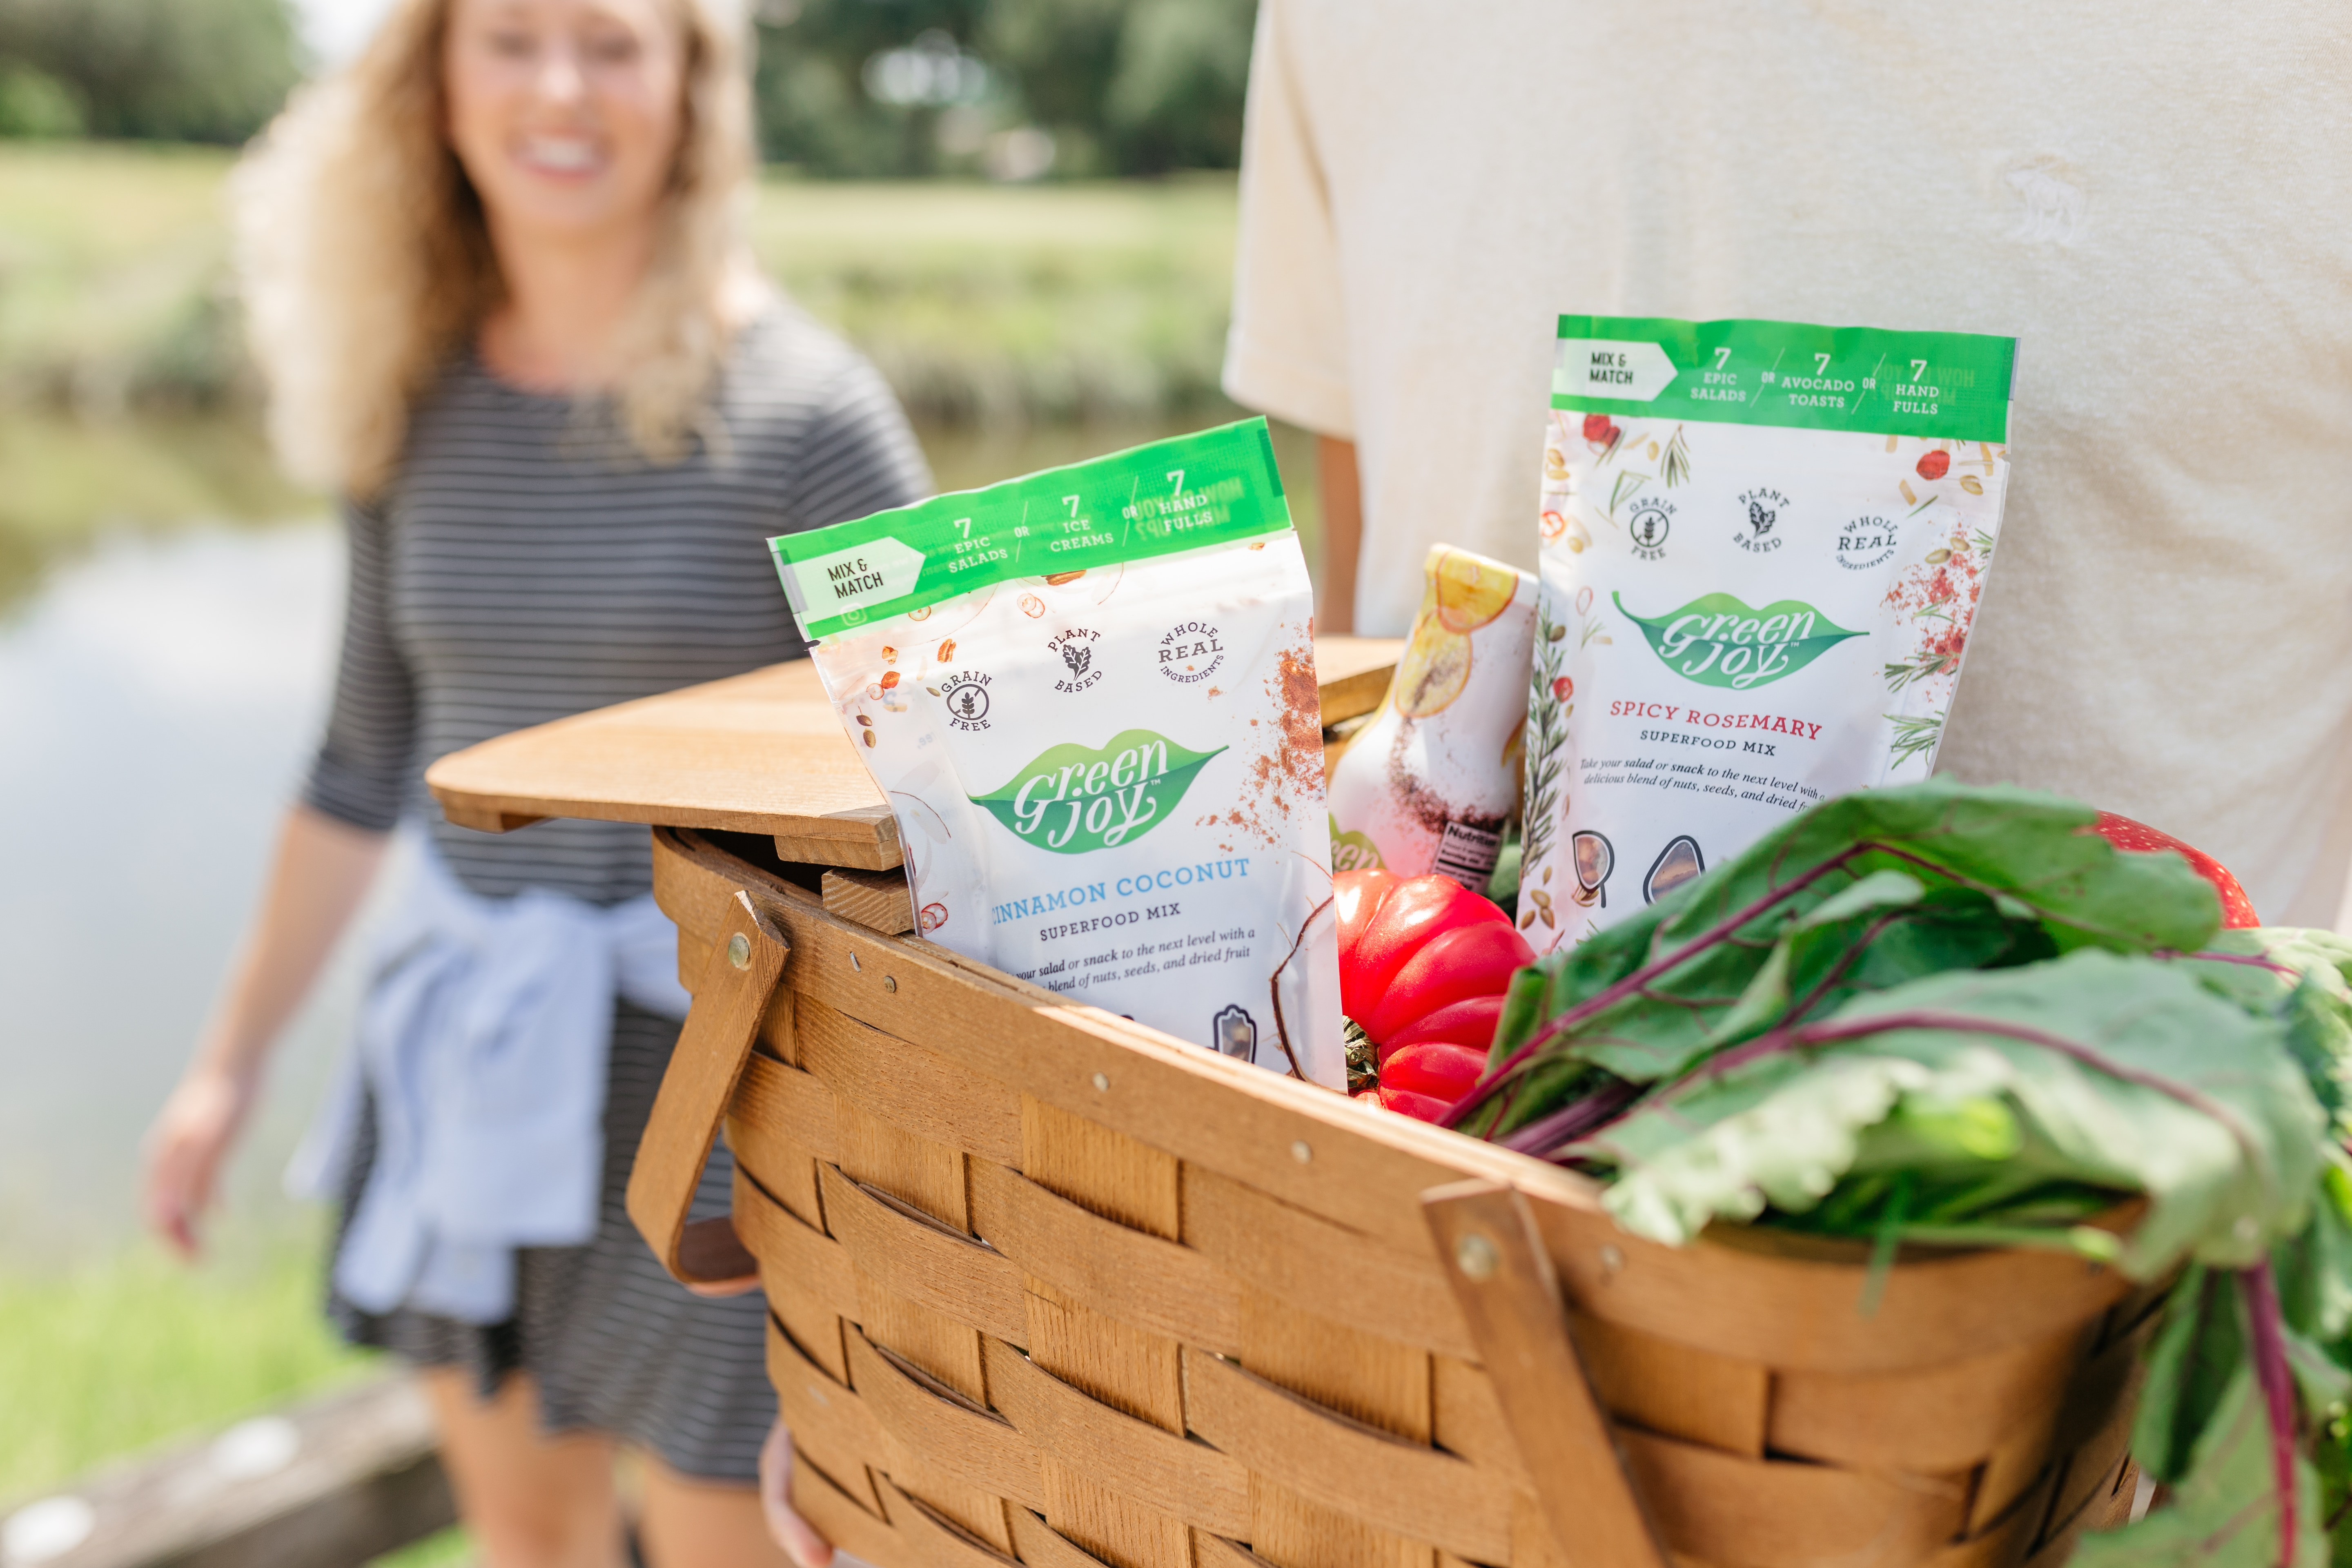 Greenjoy Donates Nearly $300,000 of Healthy Snacks to Fight Hunger During COVID-19